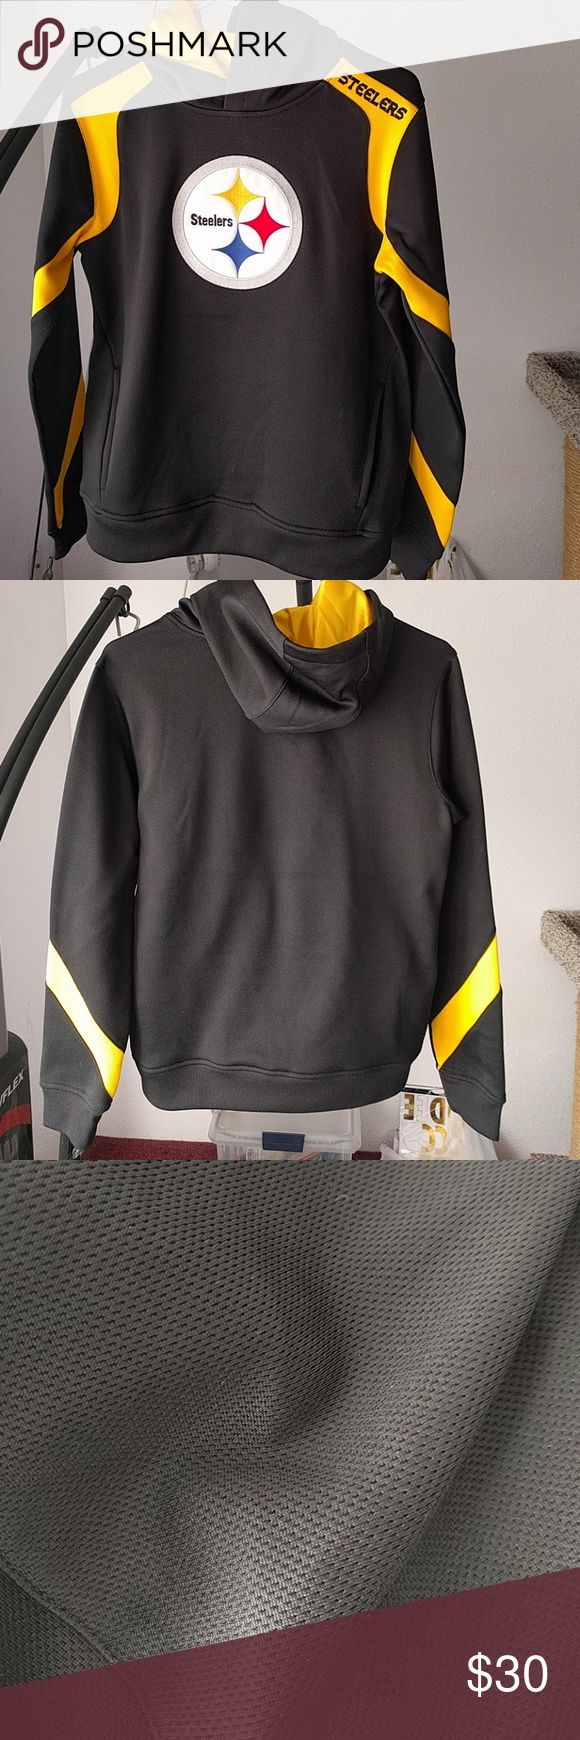 Steelers Hoodie Jacket Youth Large Excellent Condition Used once (when I was wearing size Small) Size: Youth Large 14/16 If an adult is planning to wear this, this fits if you wear size xs-s NFL Team Apparel Shirts & Tops Sweatshirts & Hoodies